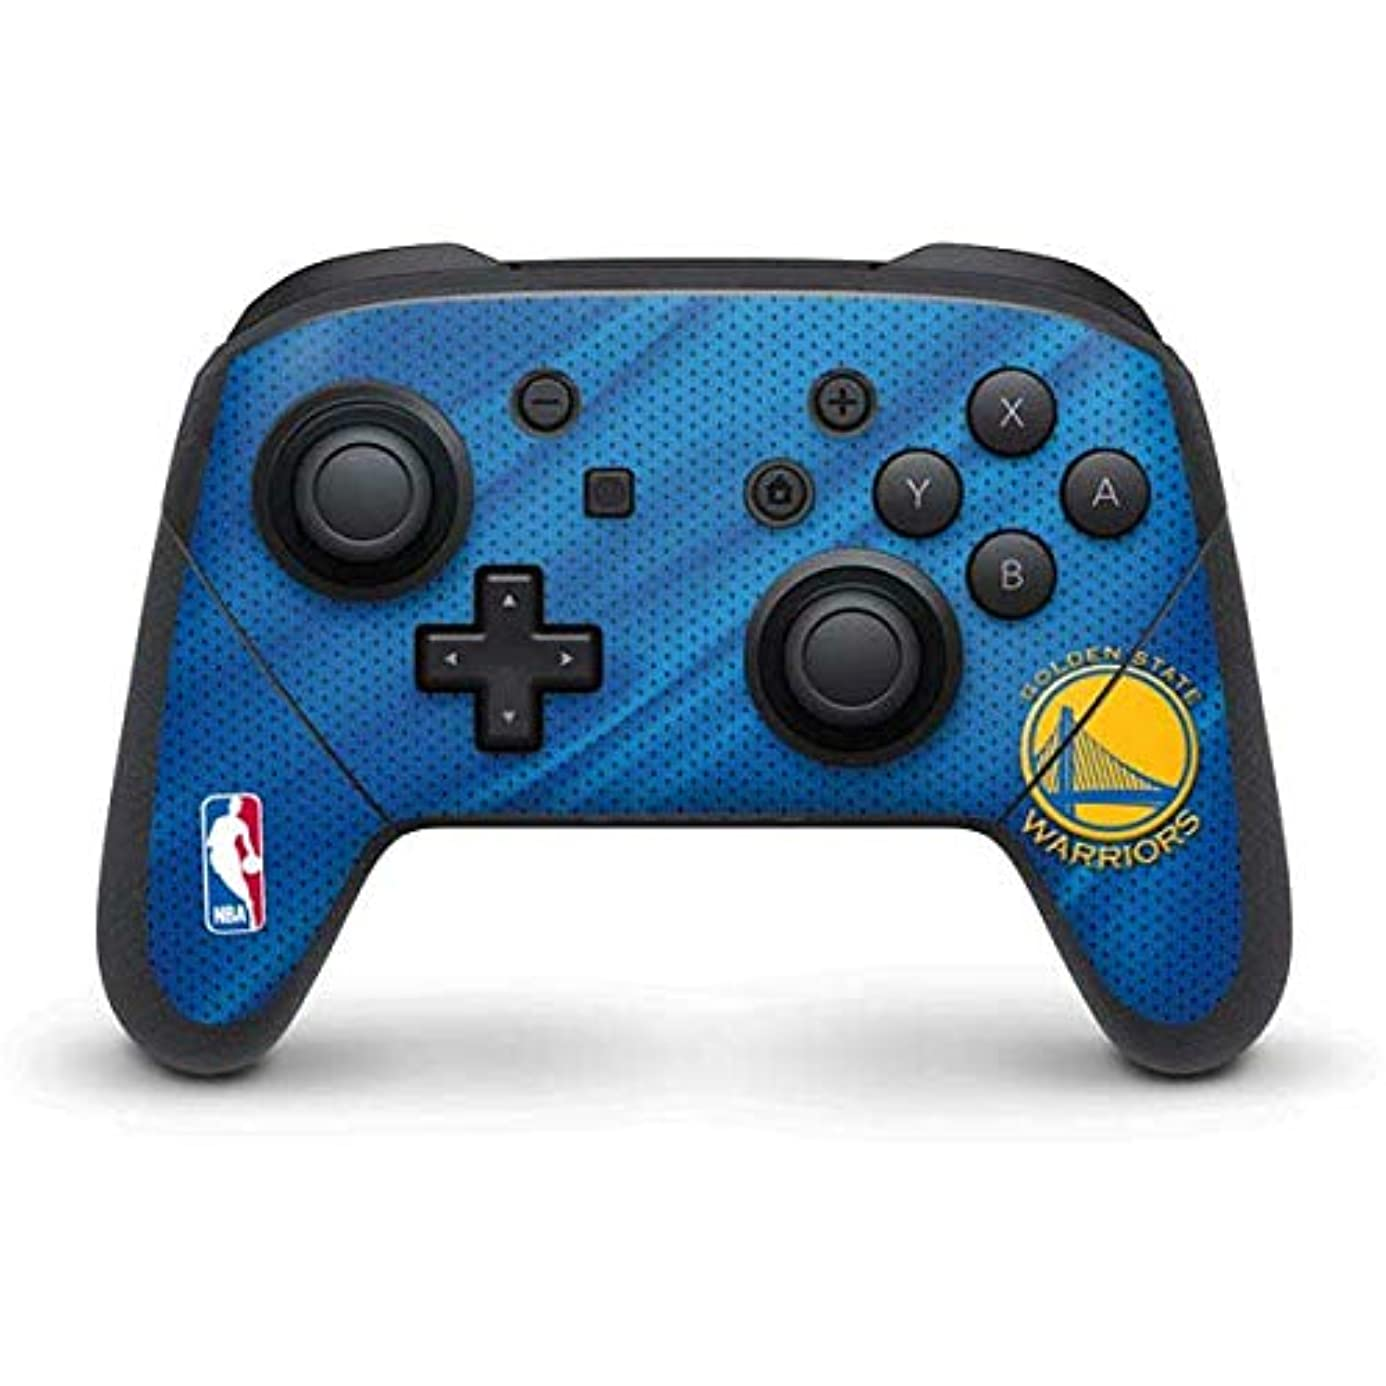 Skinit Golden State Warriors Jersey Nintendo Switch Pro Controller Skin - Officially Licensed NBA Gaming Decal - Ultra Thin, Lightweight Vinyl Decal Protection